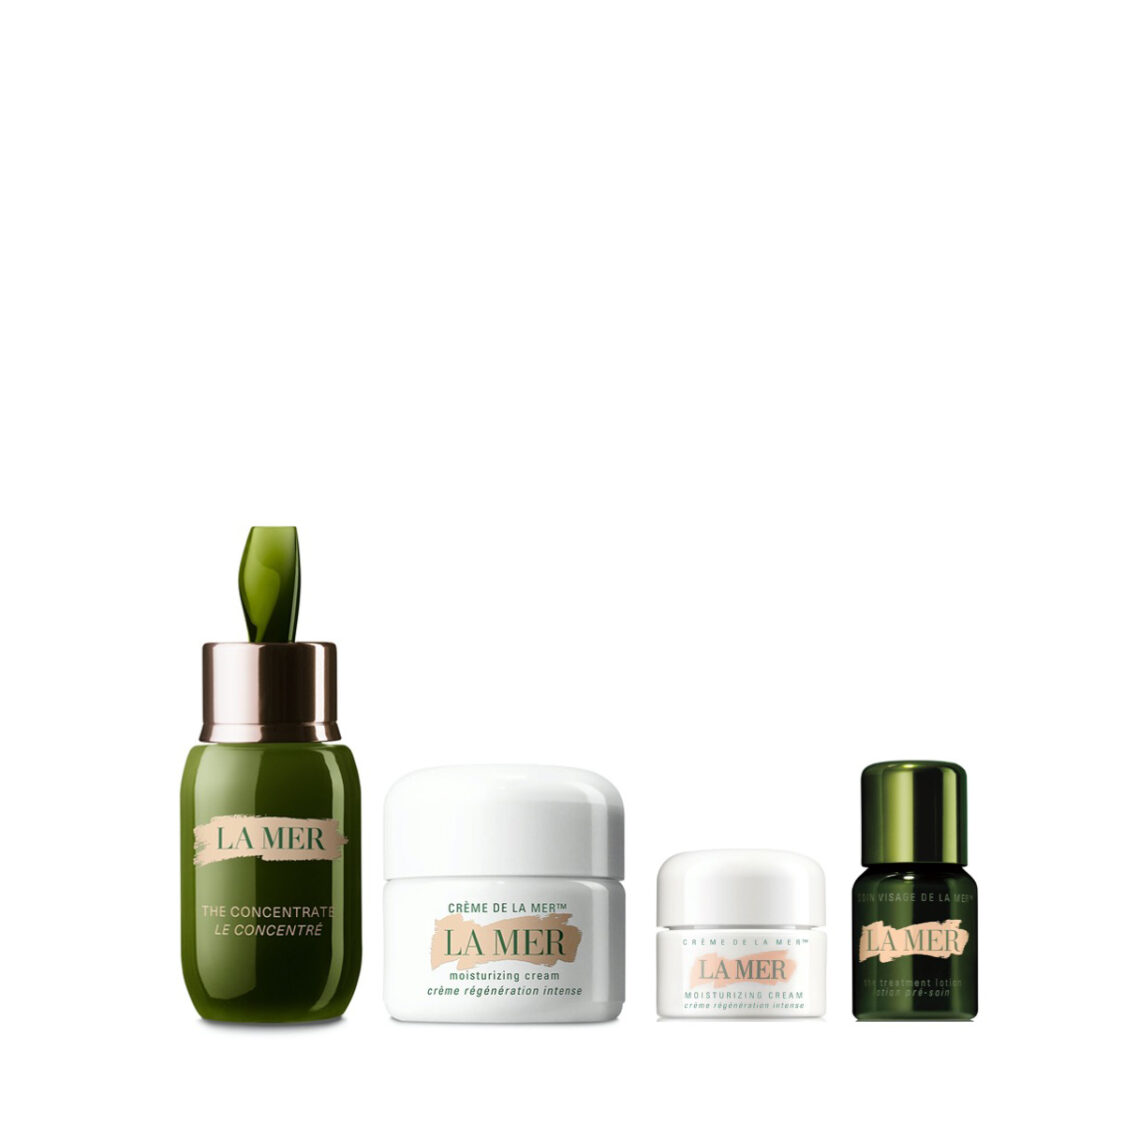 La Mer The Concentrate Little Luxury Set worth 534